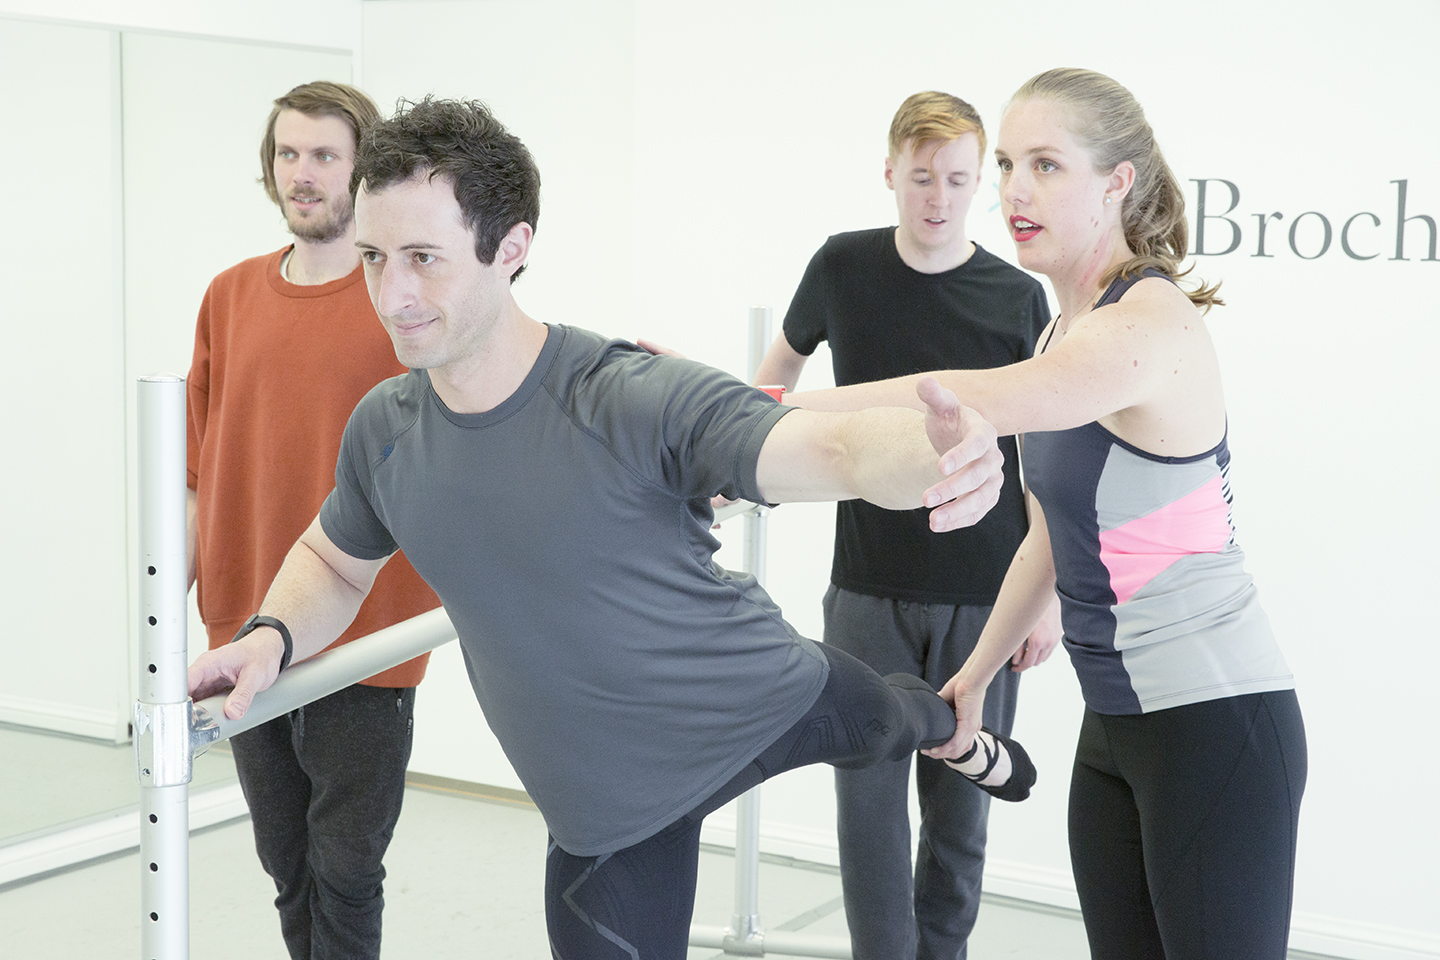 Receive True classical ballet training - Our environment welcomes dancers without sacrificing the true essence of ballet technique. This isn't a barre class simply for a ballet-inspired workout.Learn the purest form of classical ballet and find yourself in the process.